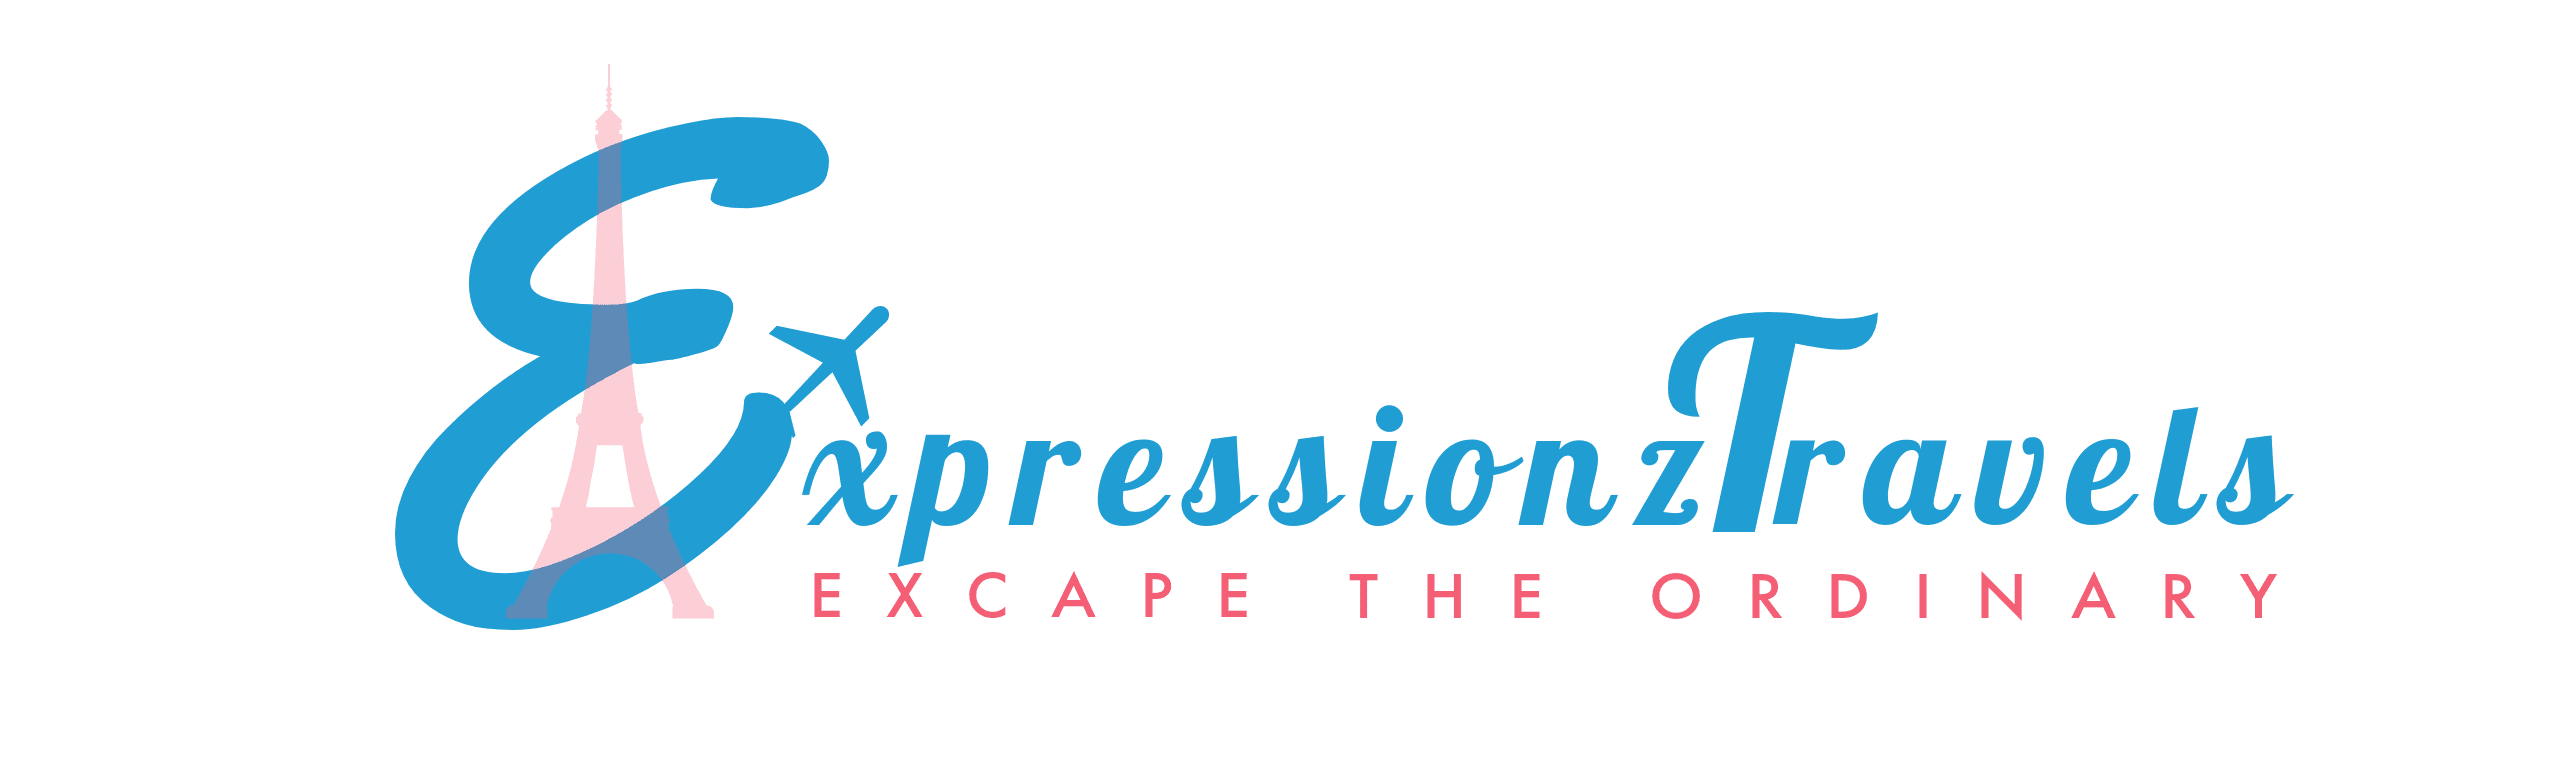 Expressionz Travels